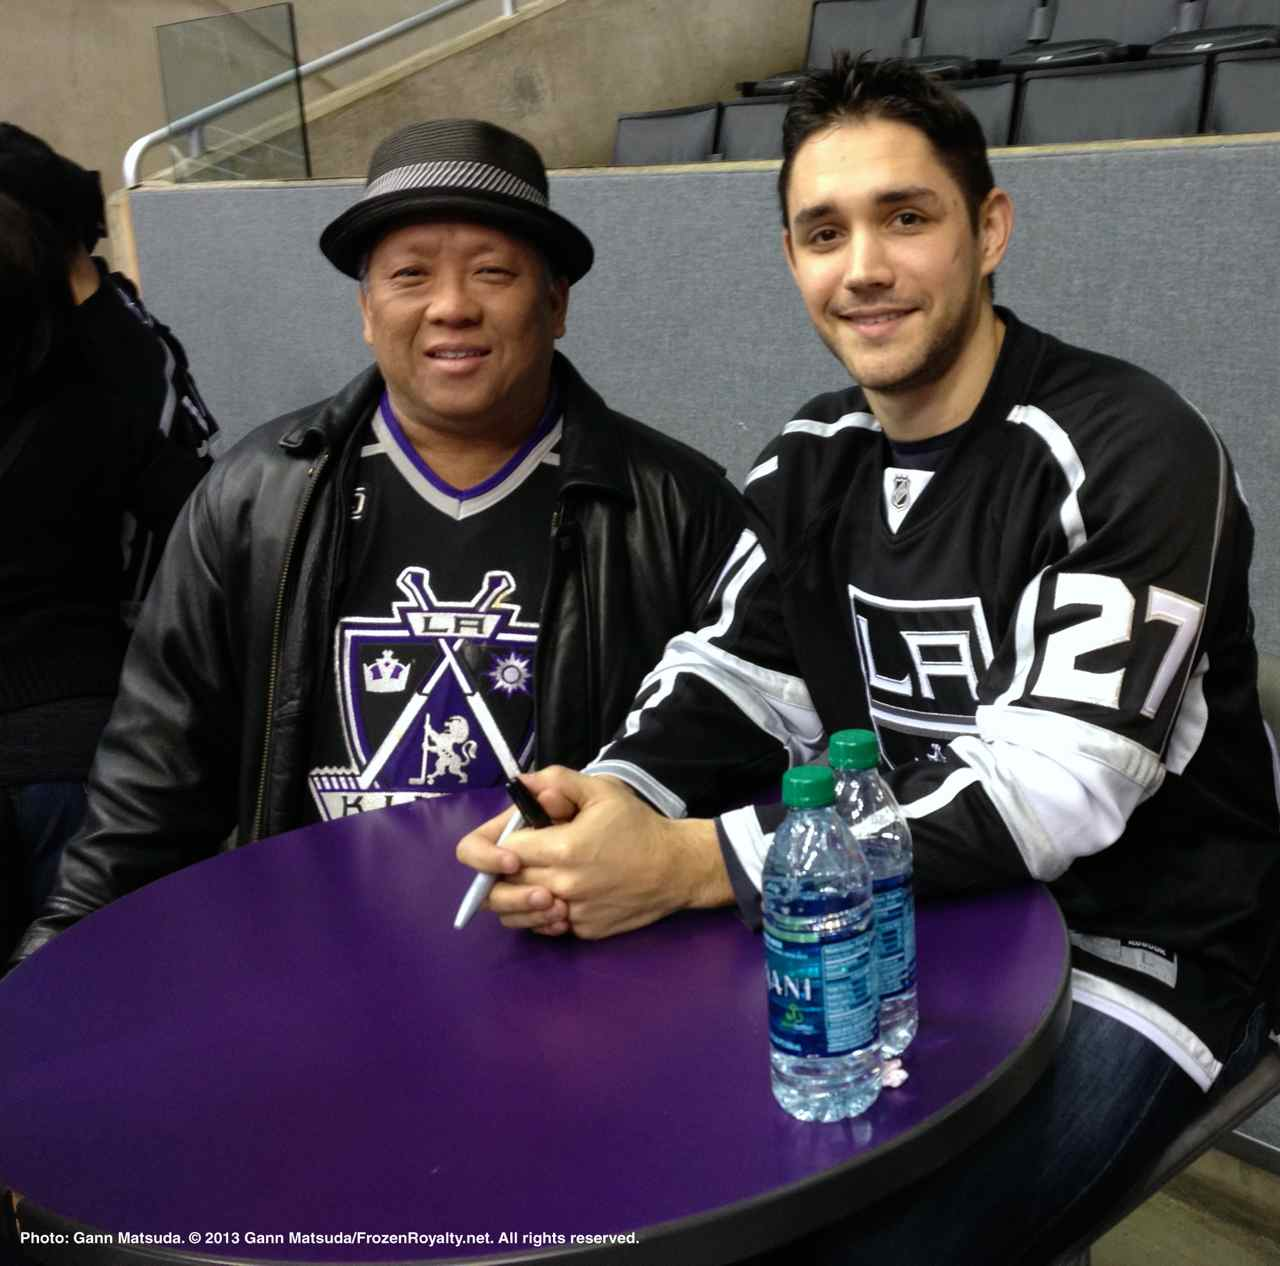 los angeles kings fans get to meet the players  u2013 photo essay